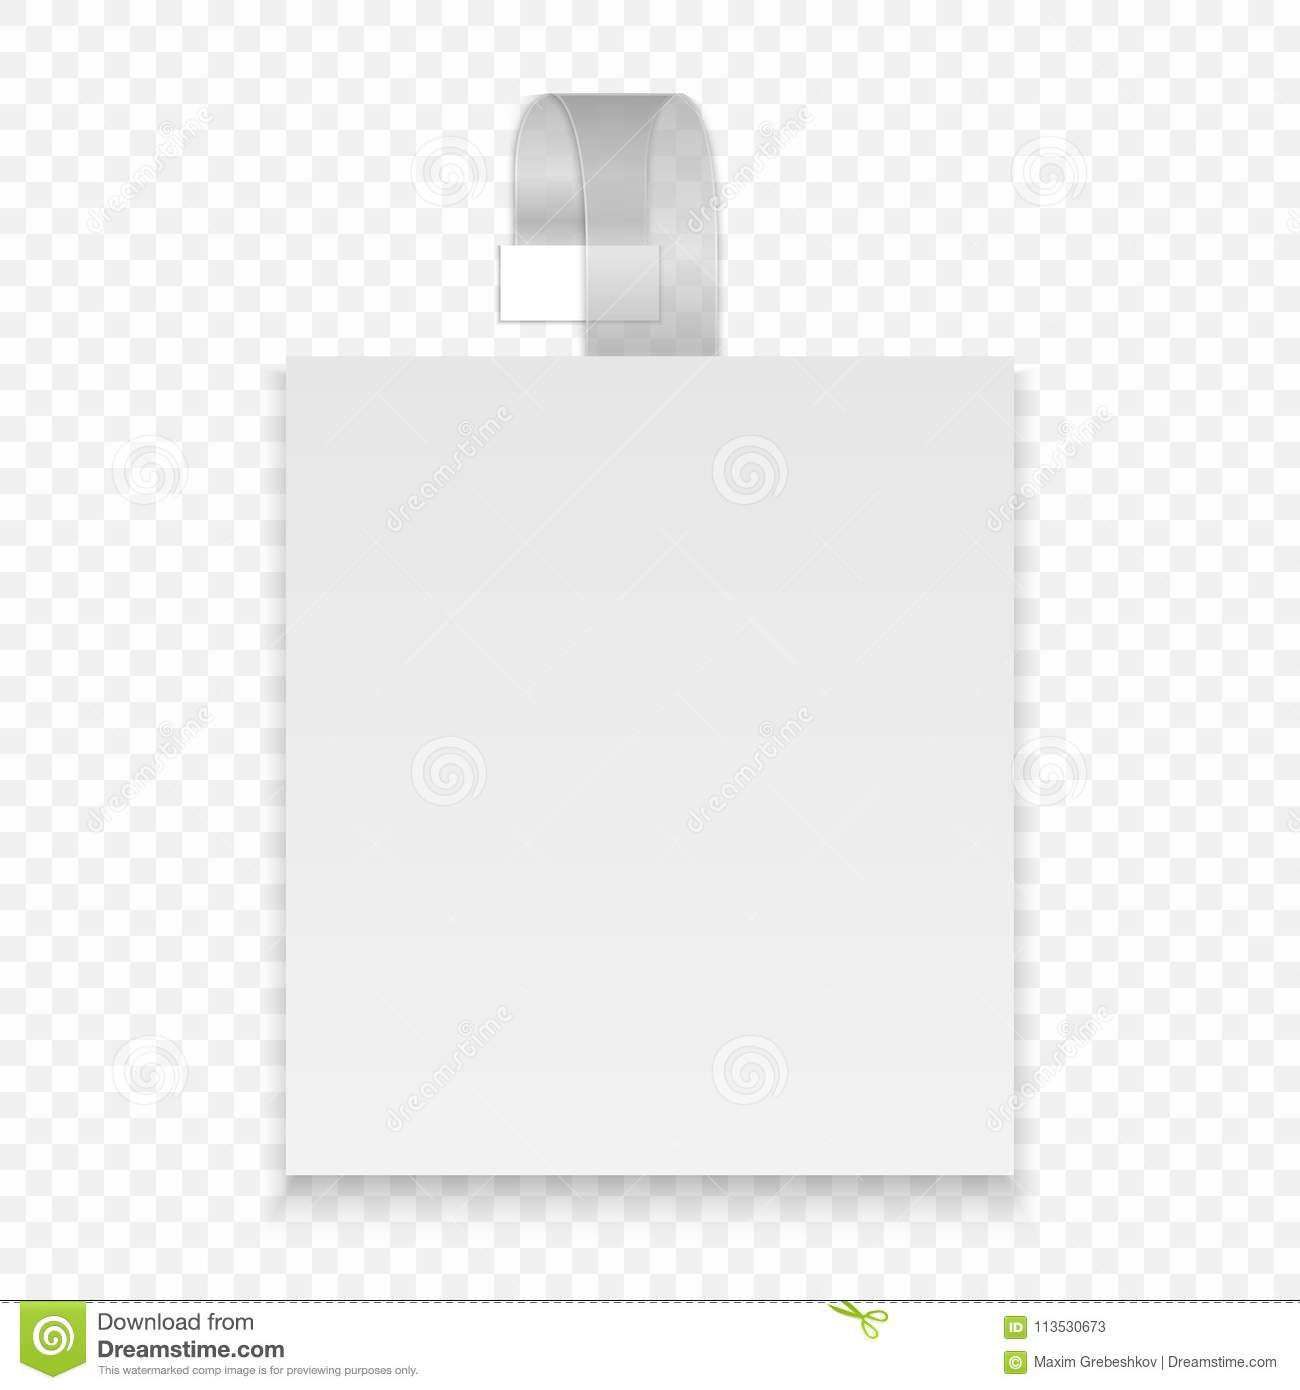 Blank Wobbler Stock Vector Illustration Of Poster Corner 113530673